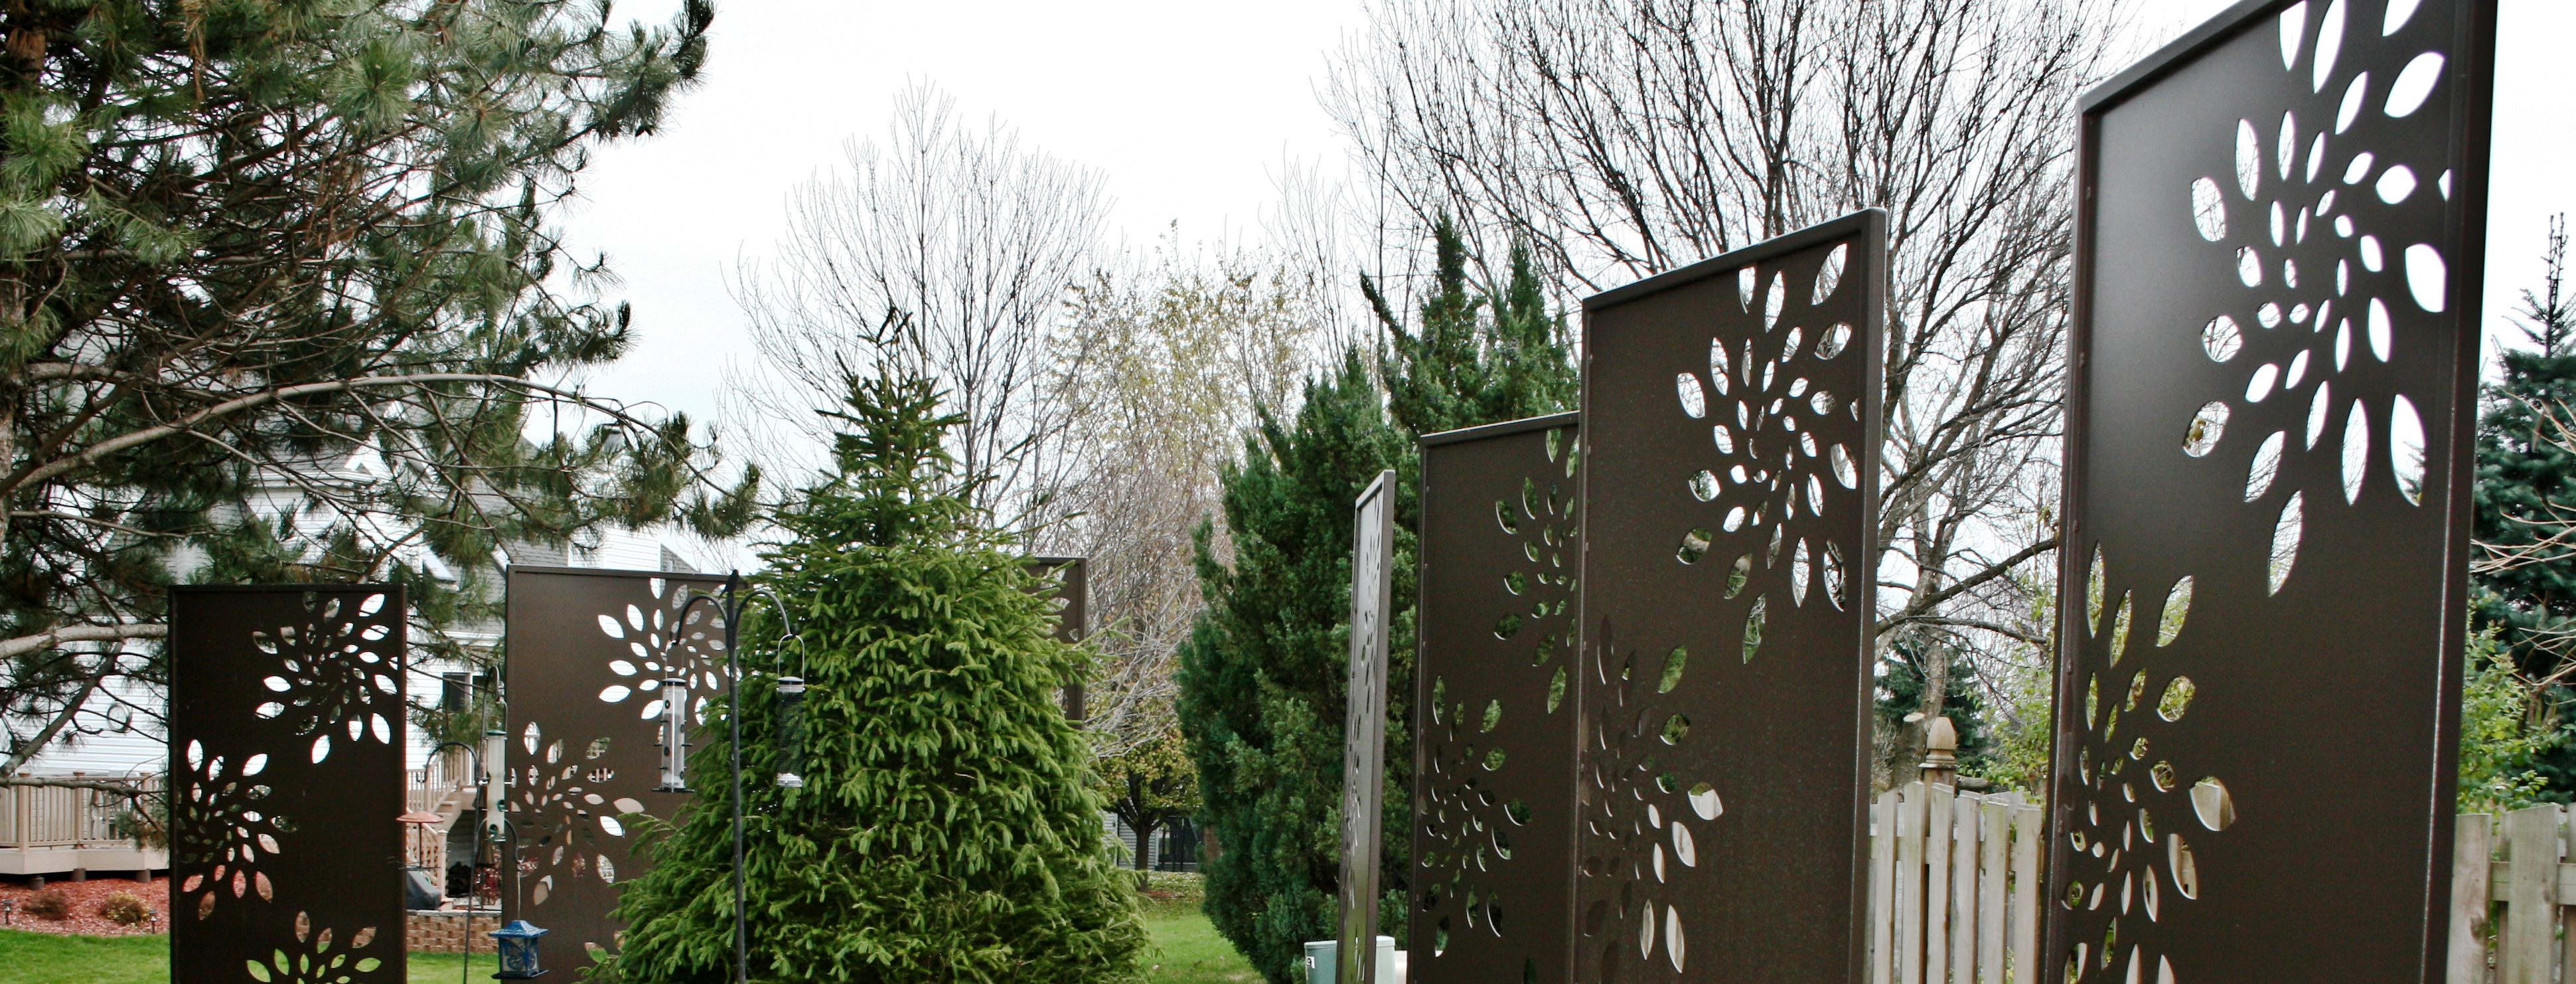 Privacy & Utility Screens | Aesthetic Metals